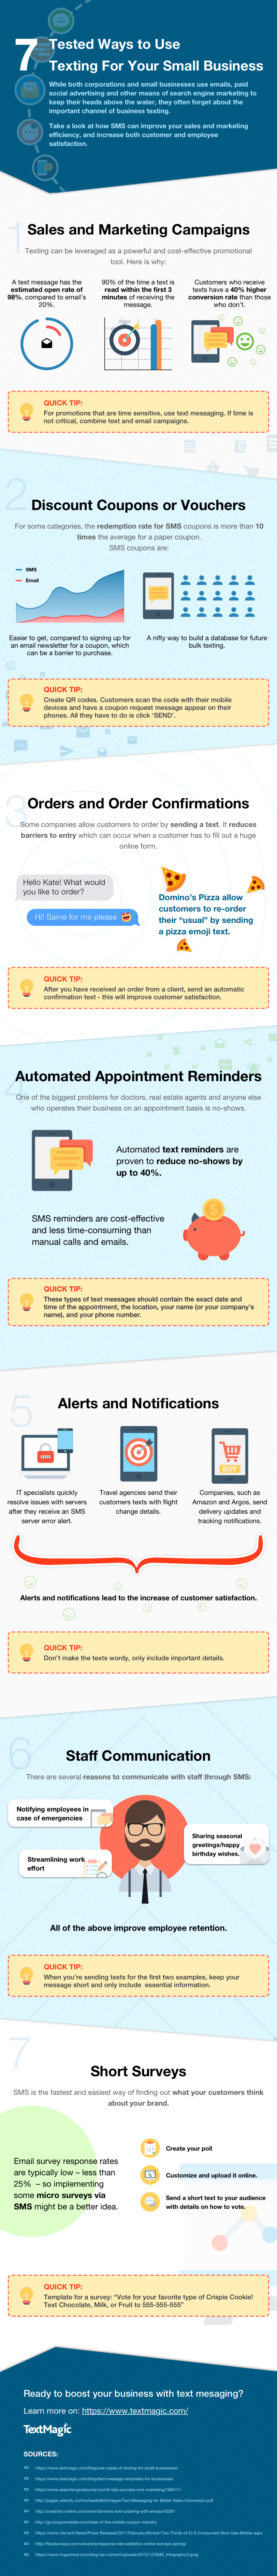 How Can You Benefit from Text Message Marketing